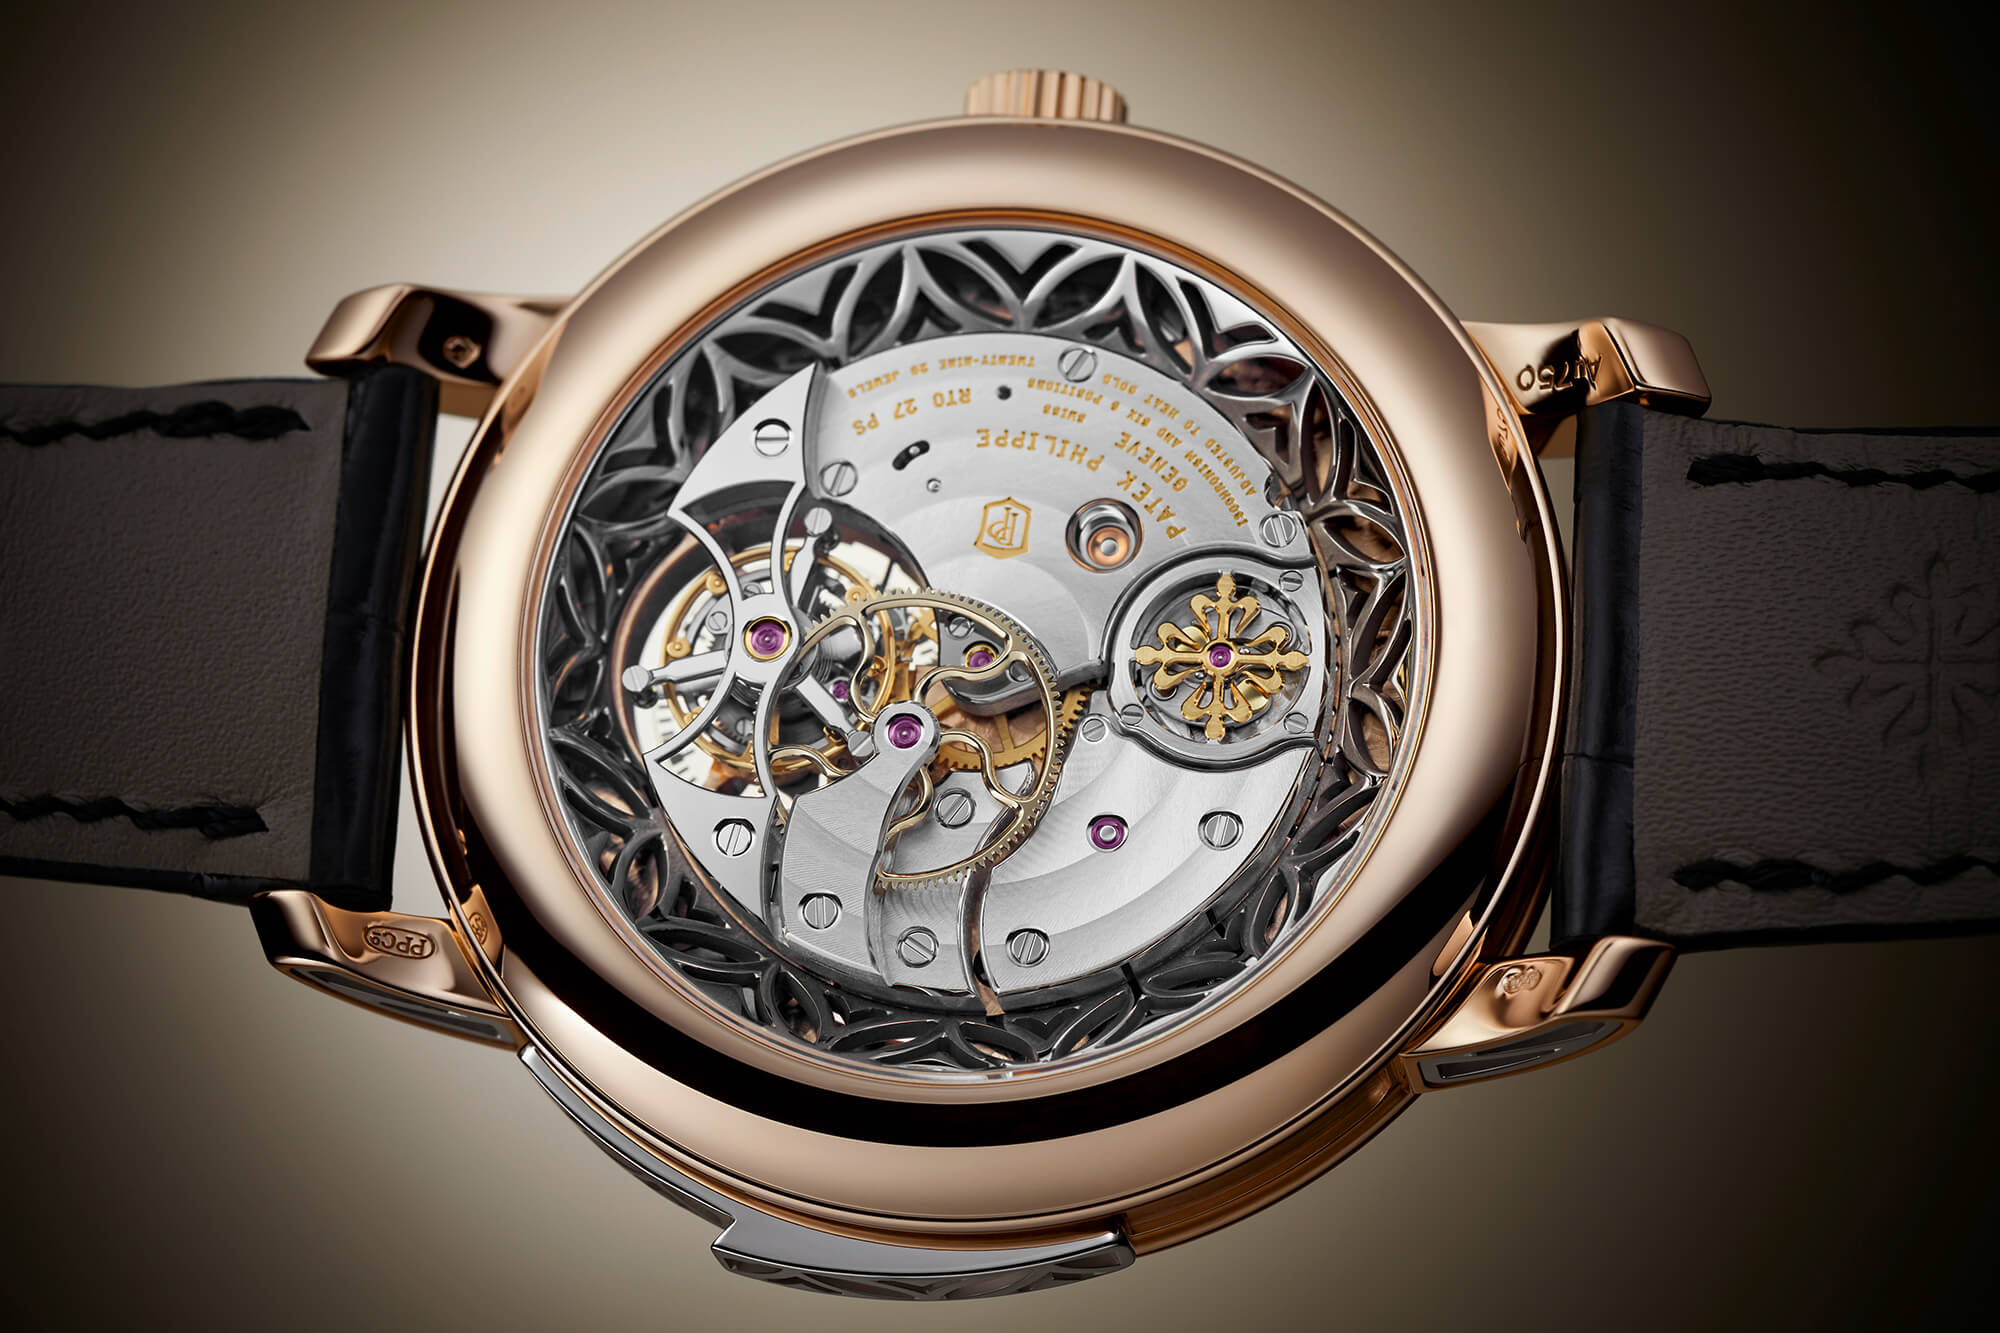 Patek Philippe Ref. 5303R-001 Minute Repeater Tourbillon